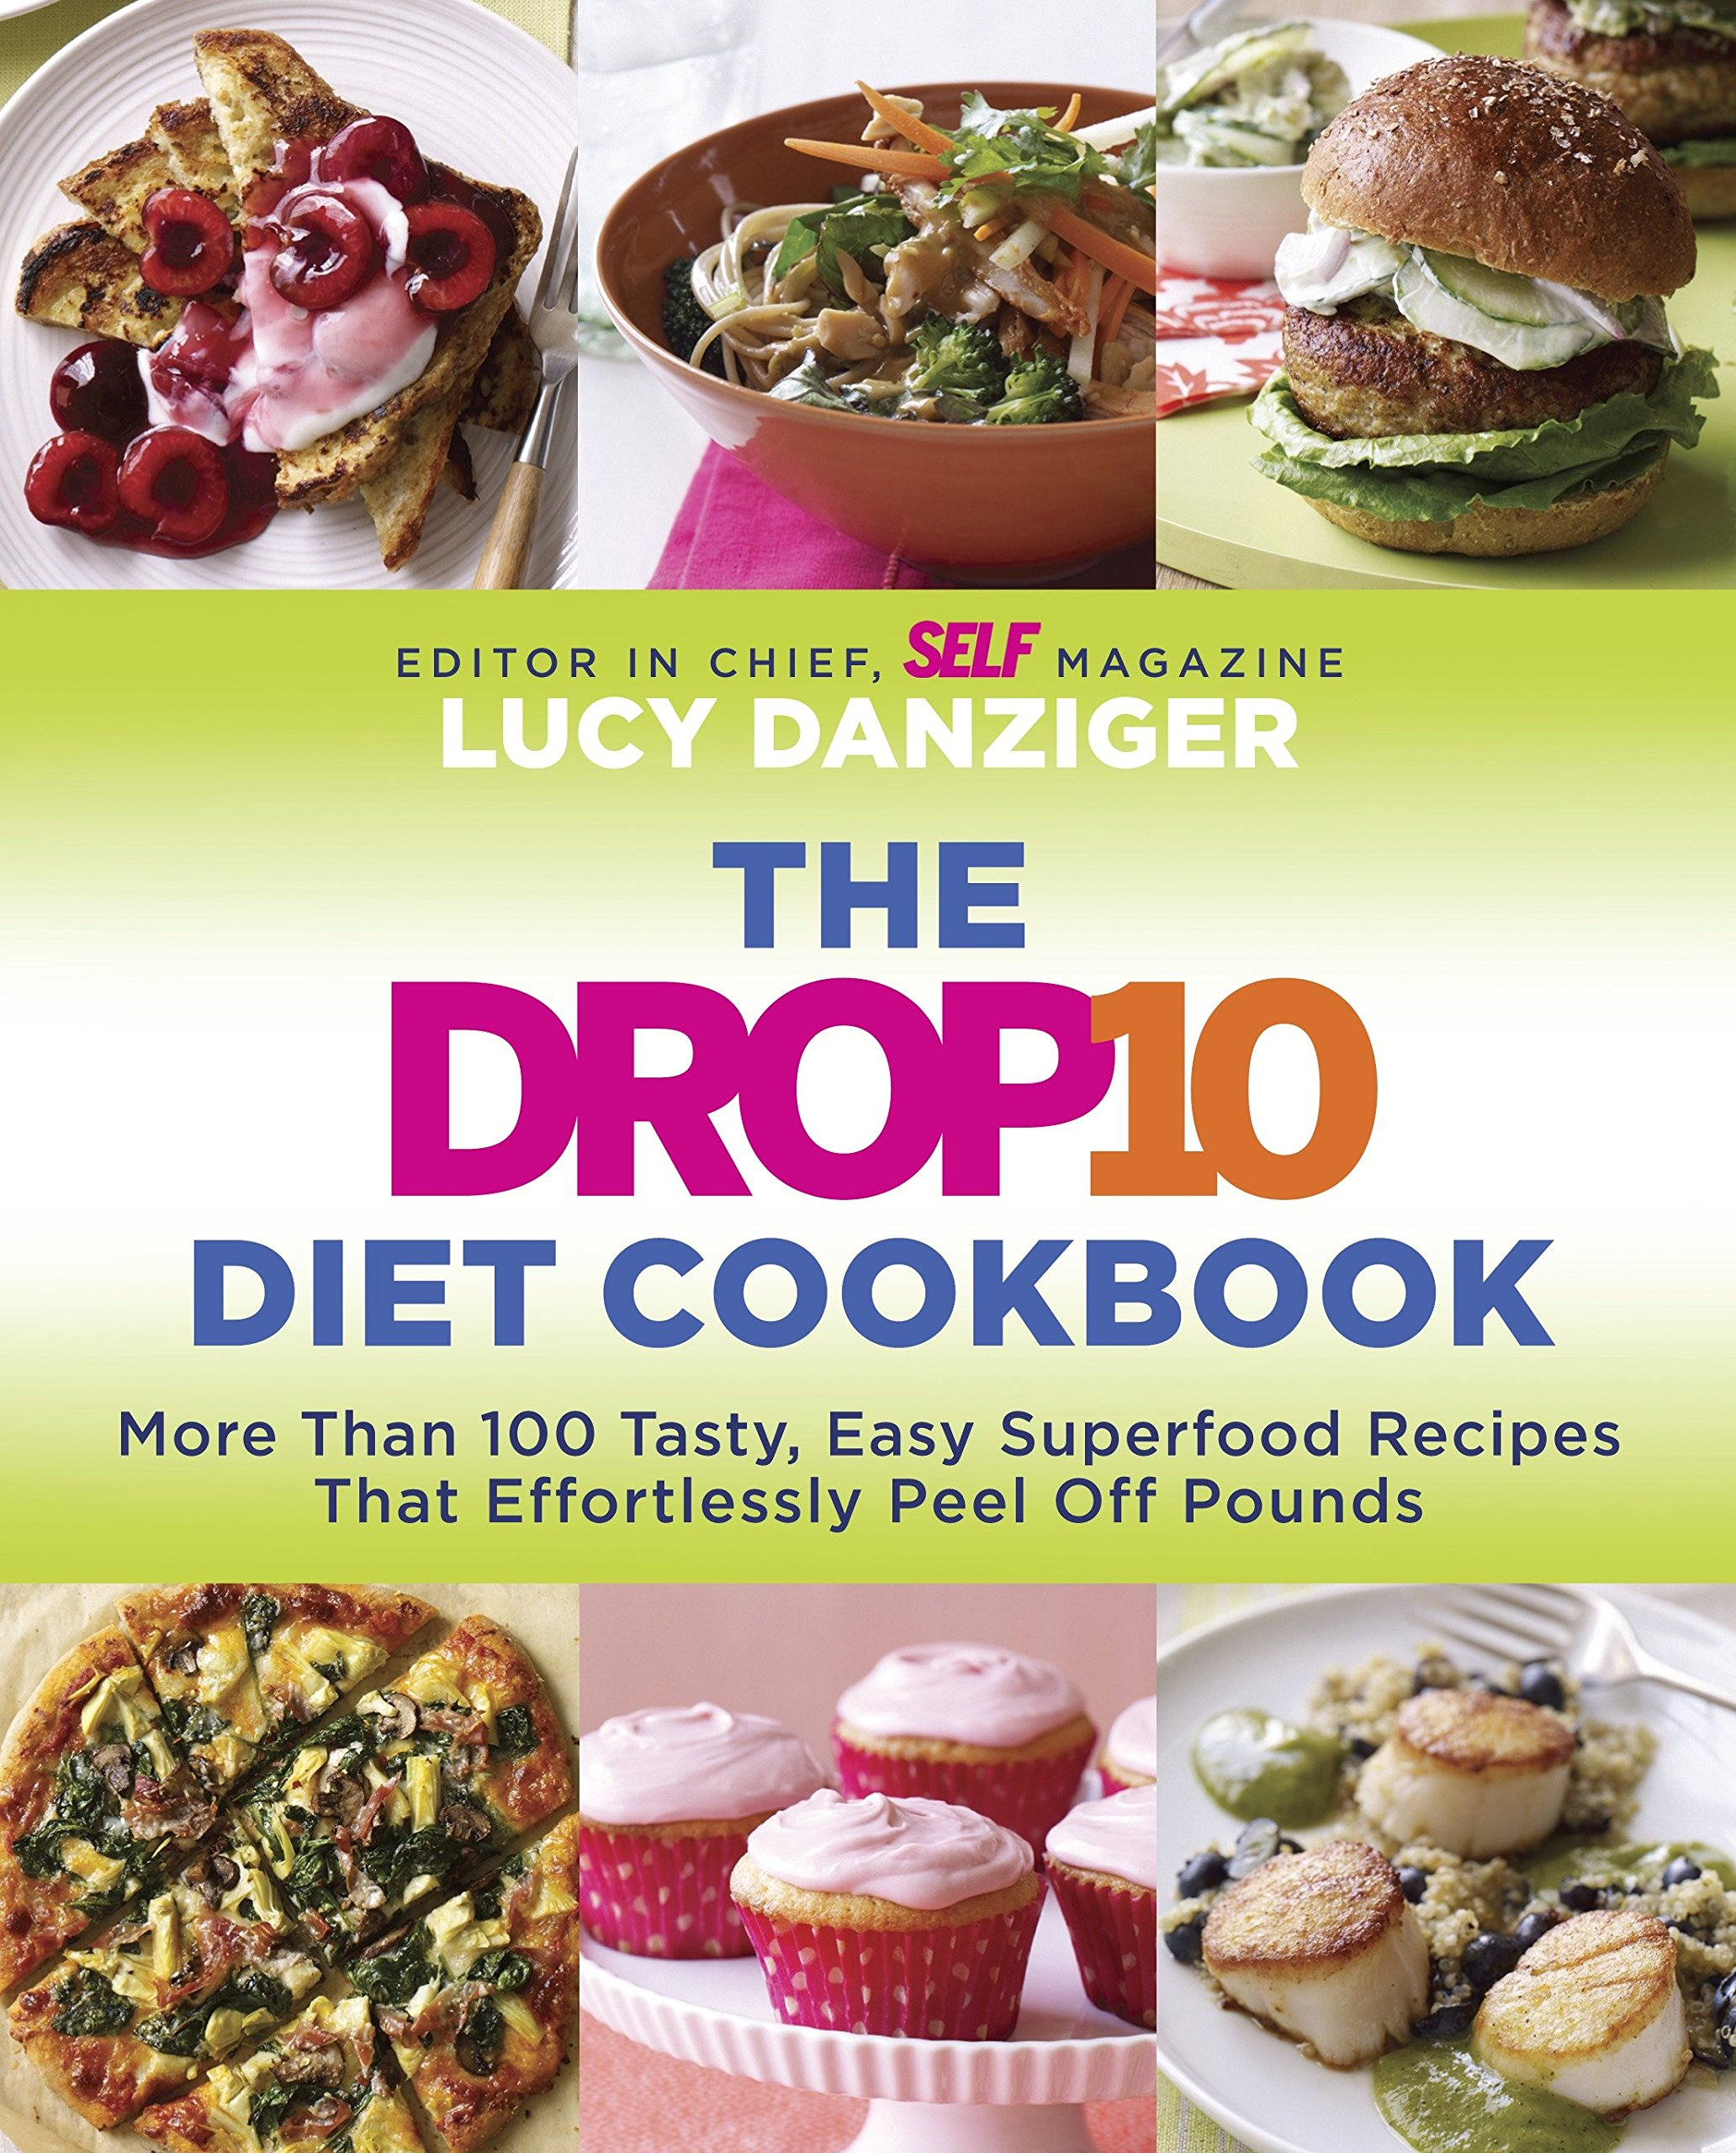 The Drop 10 Diet Cookbook: More Than 100 Tasty, Easy Superfood Recipes That  Effortlessly Peel Off Pounds: Lucy Danziger: 8601400450819: Amazon.com:  Books